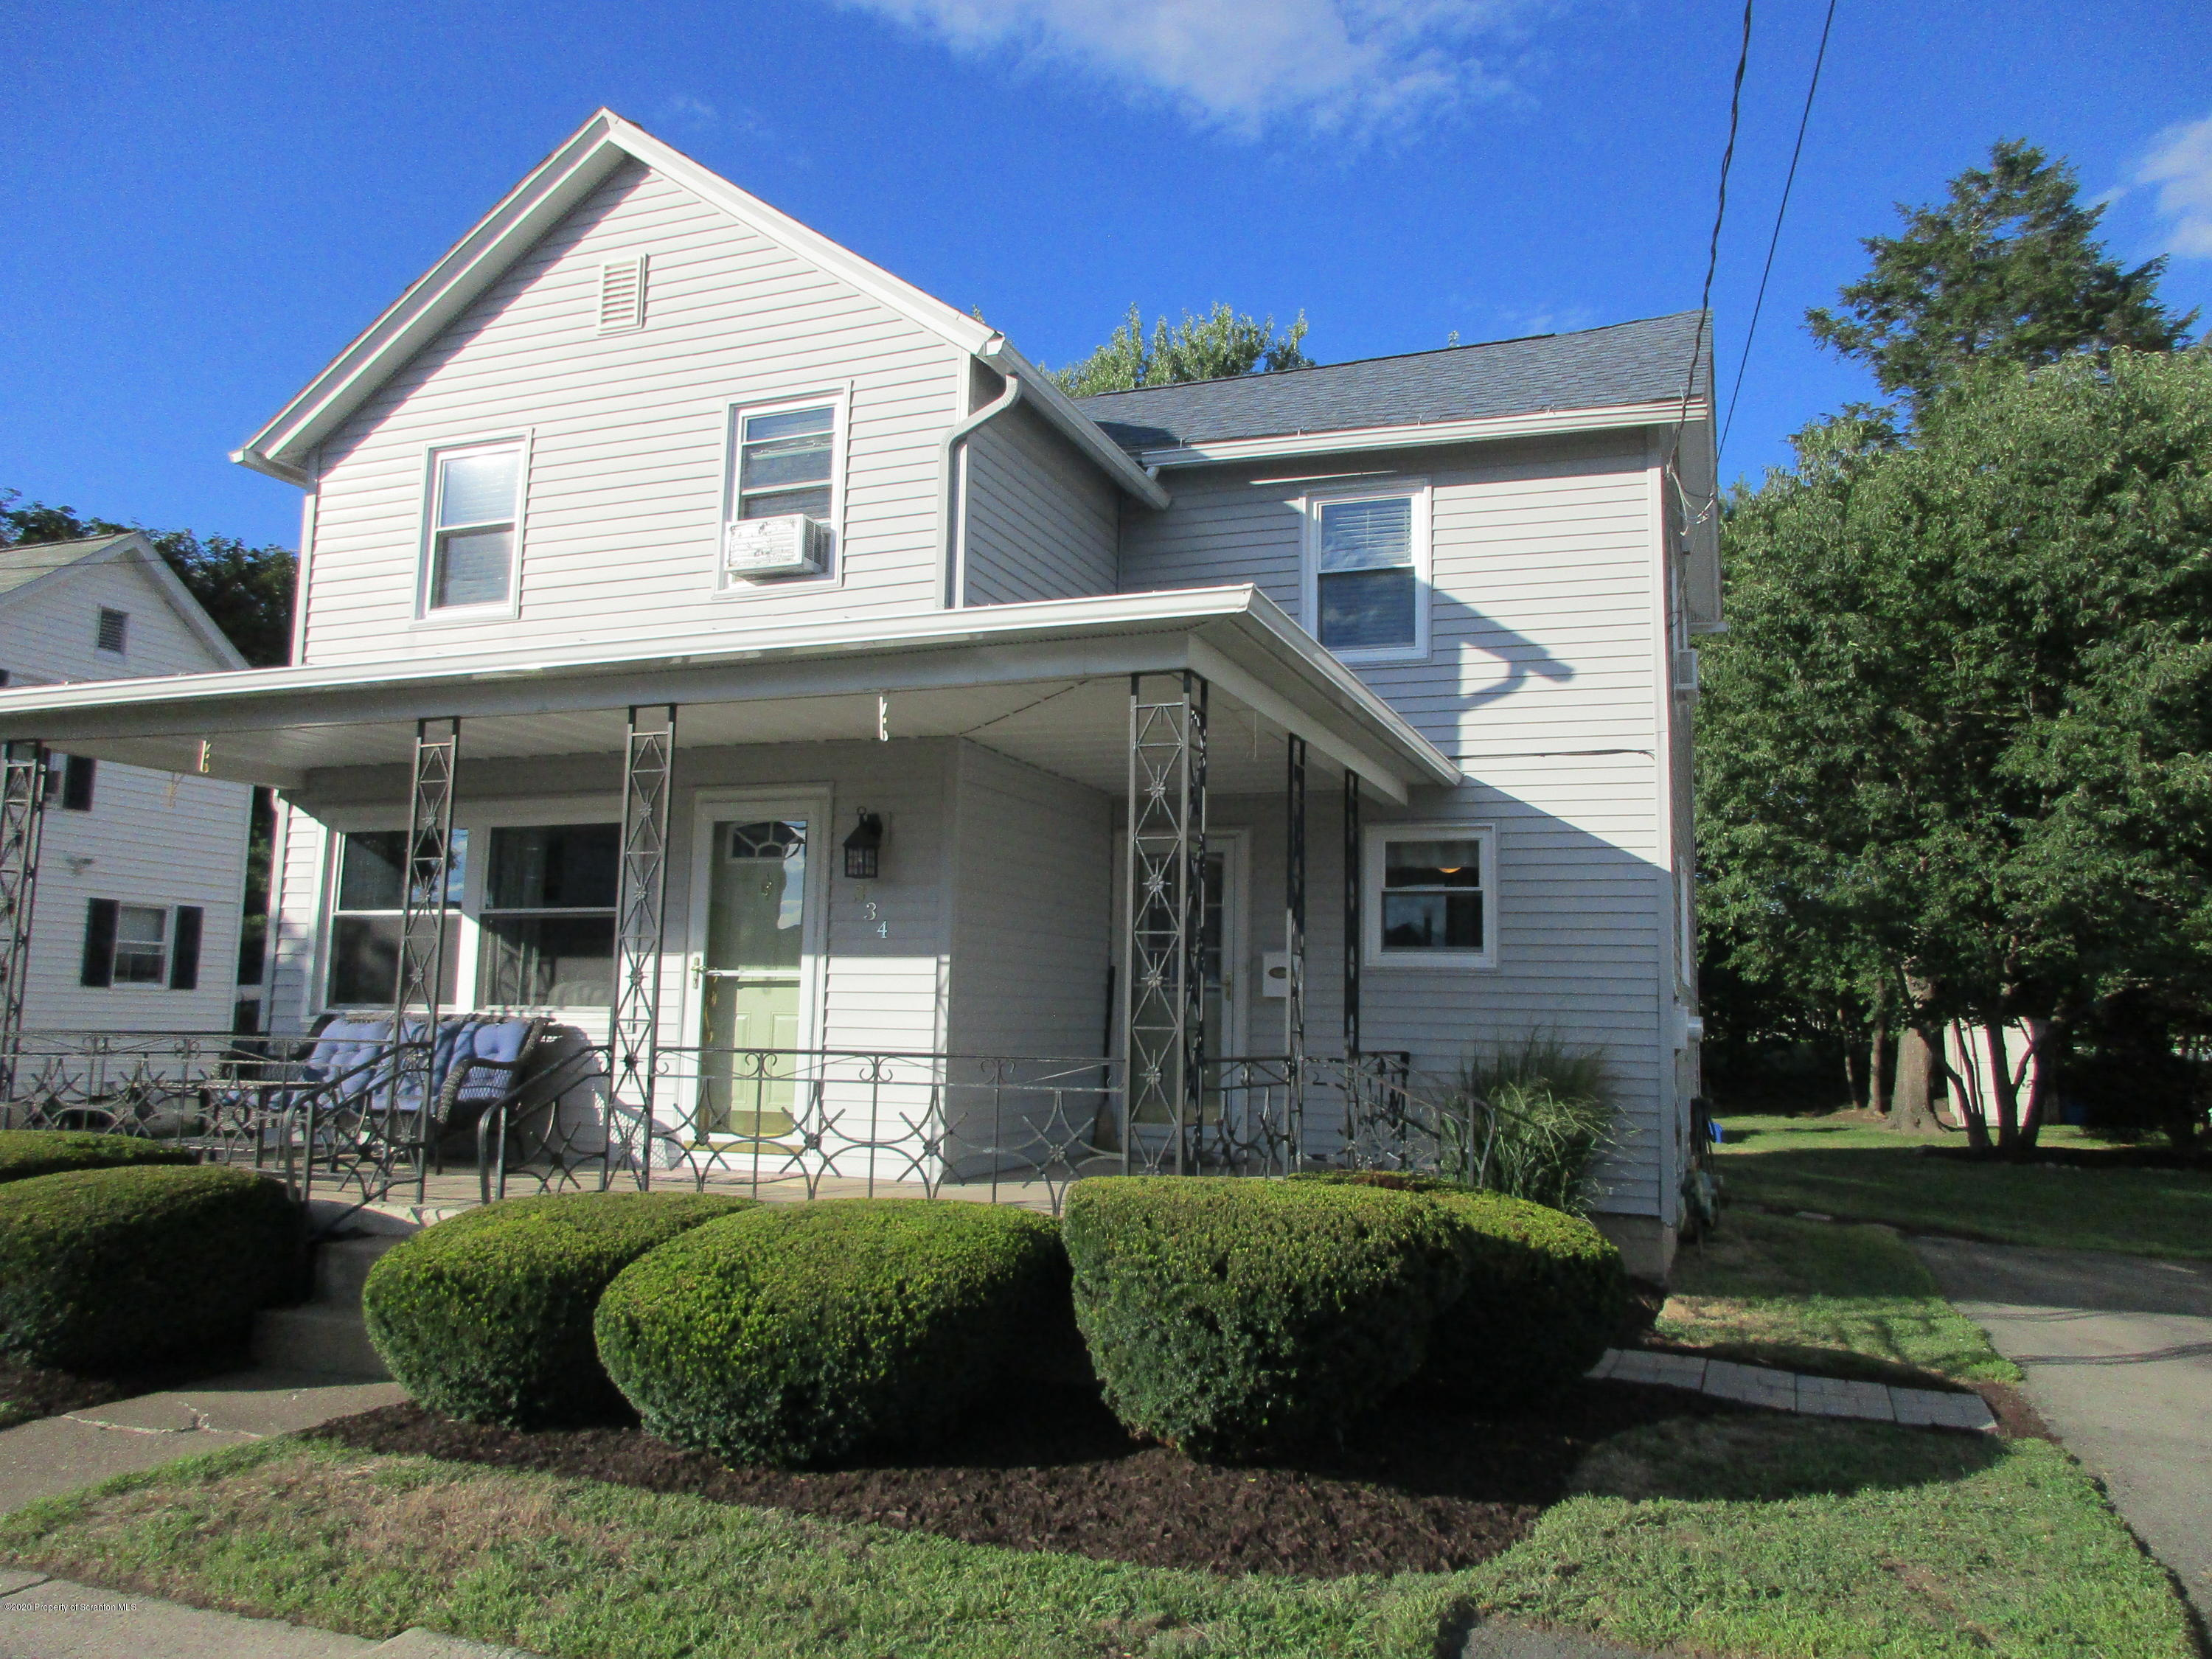 334 Dolph St, Olyphant, Pennsylvania 18447, 2 Bedrooms Bedrooms, 5 Rooms Rooms,2 BathroomsBathrooms,Single Family,For Sale,Dolph,20-3306